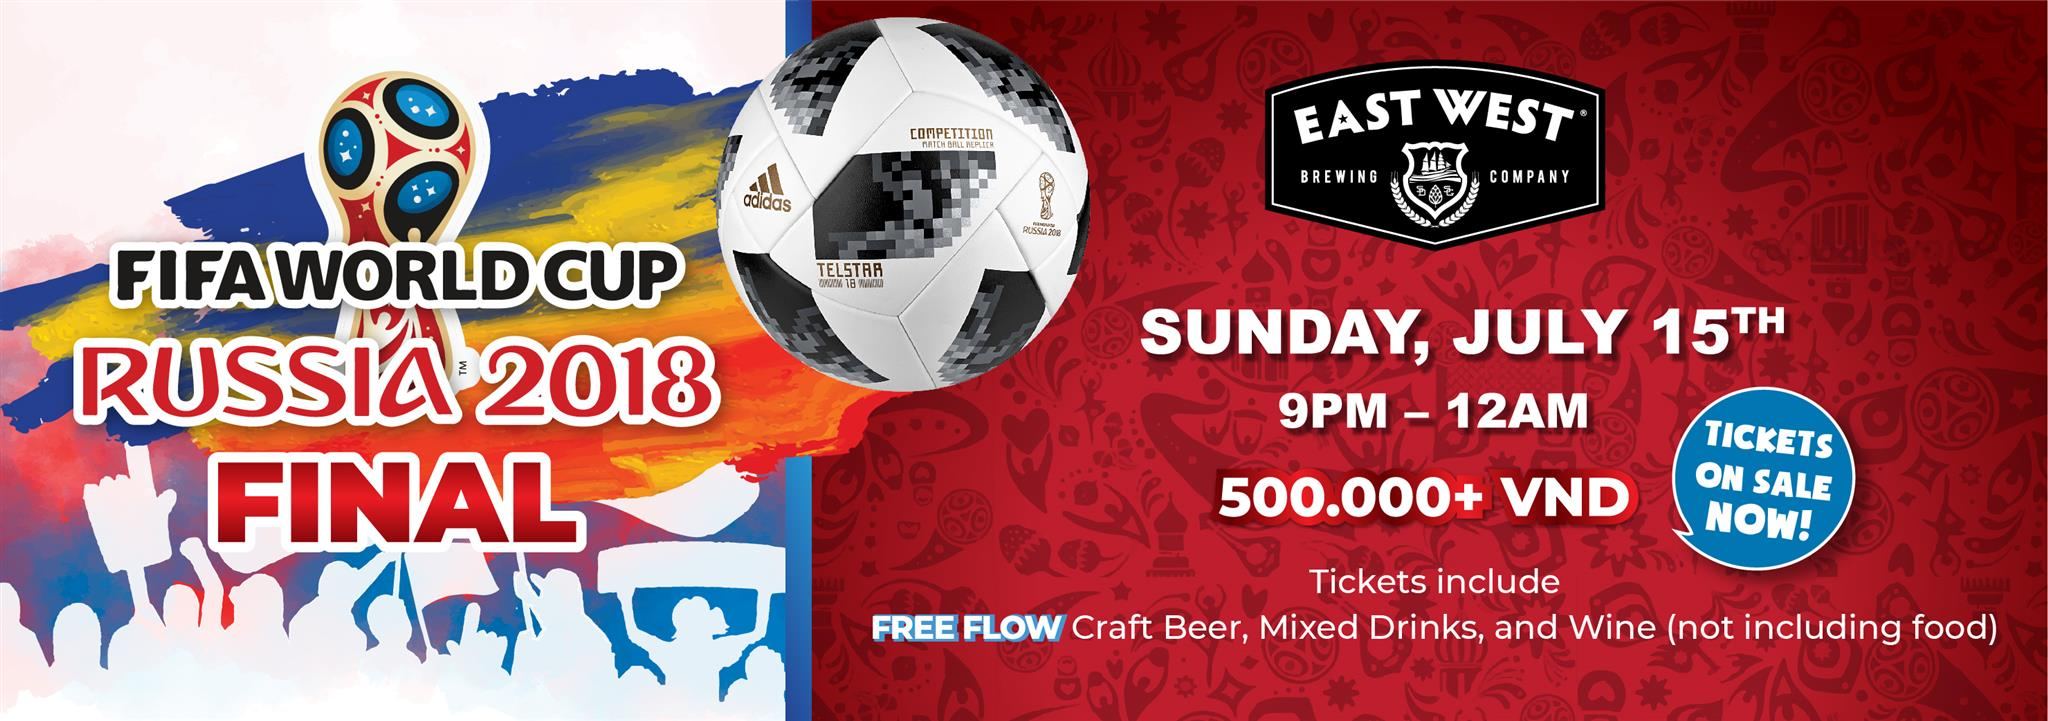 FIFA World Cup - Russia 2018 Final! @ East West Brewing Co.